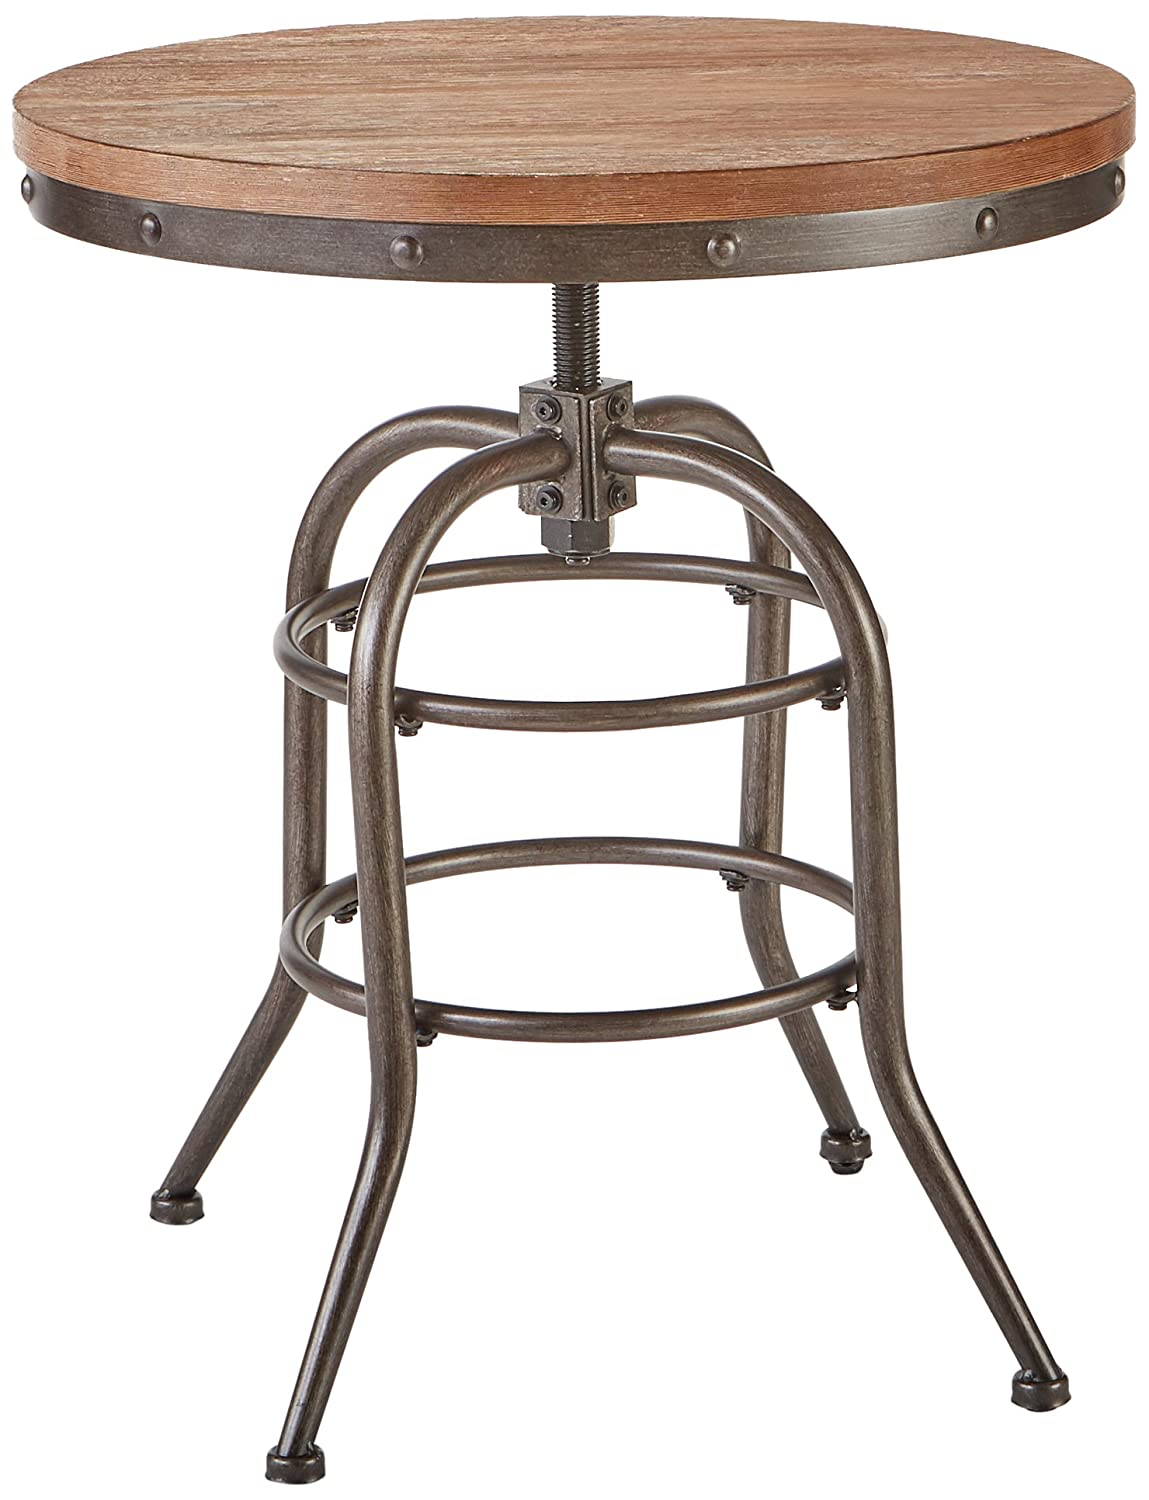 Ashley Furniture Signature Design - Vennilux End Table - Vintage Casual - Round - Grayish Brown